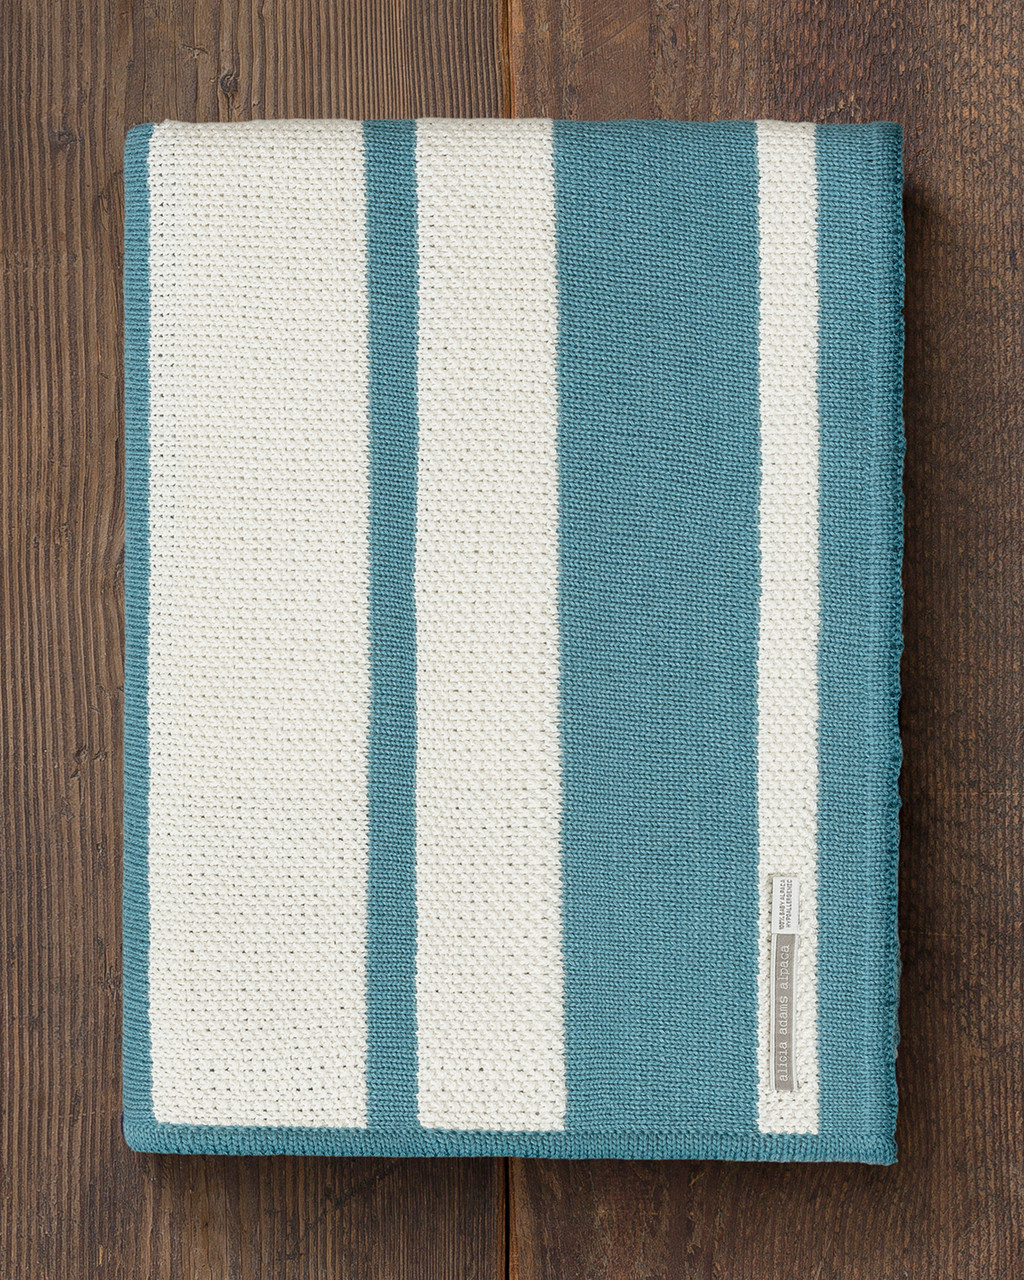 Alicia Adams Alpaca Malibu Throw, lightweight alpaca throw blanket, alpaca throw, alpaca vs cashmere, celery and teal striped alpaca throw